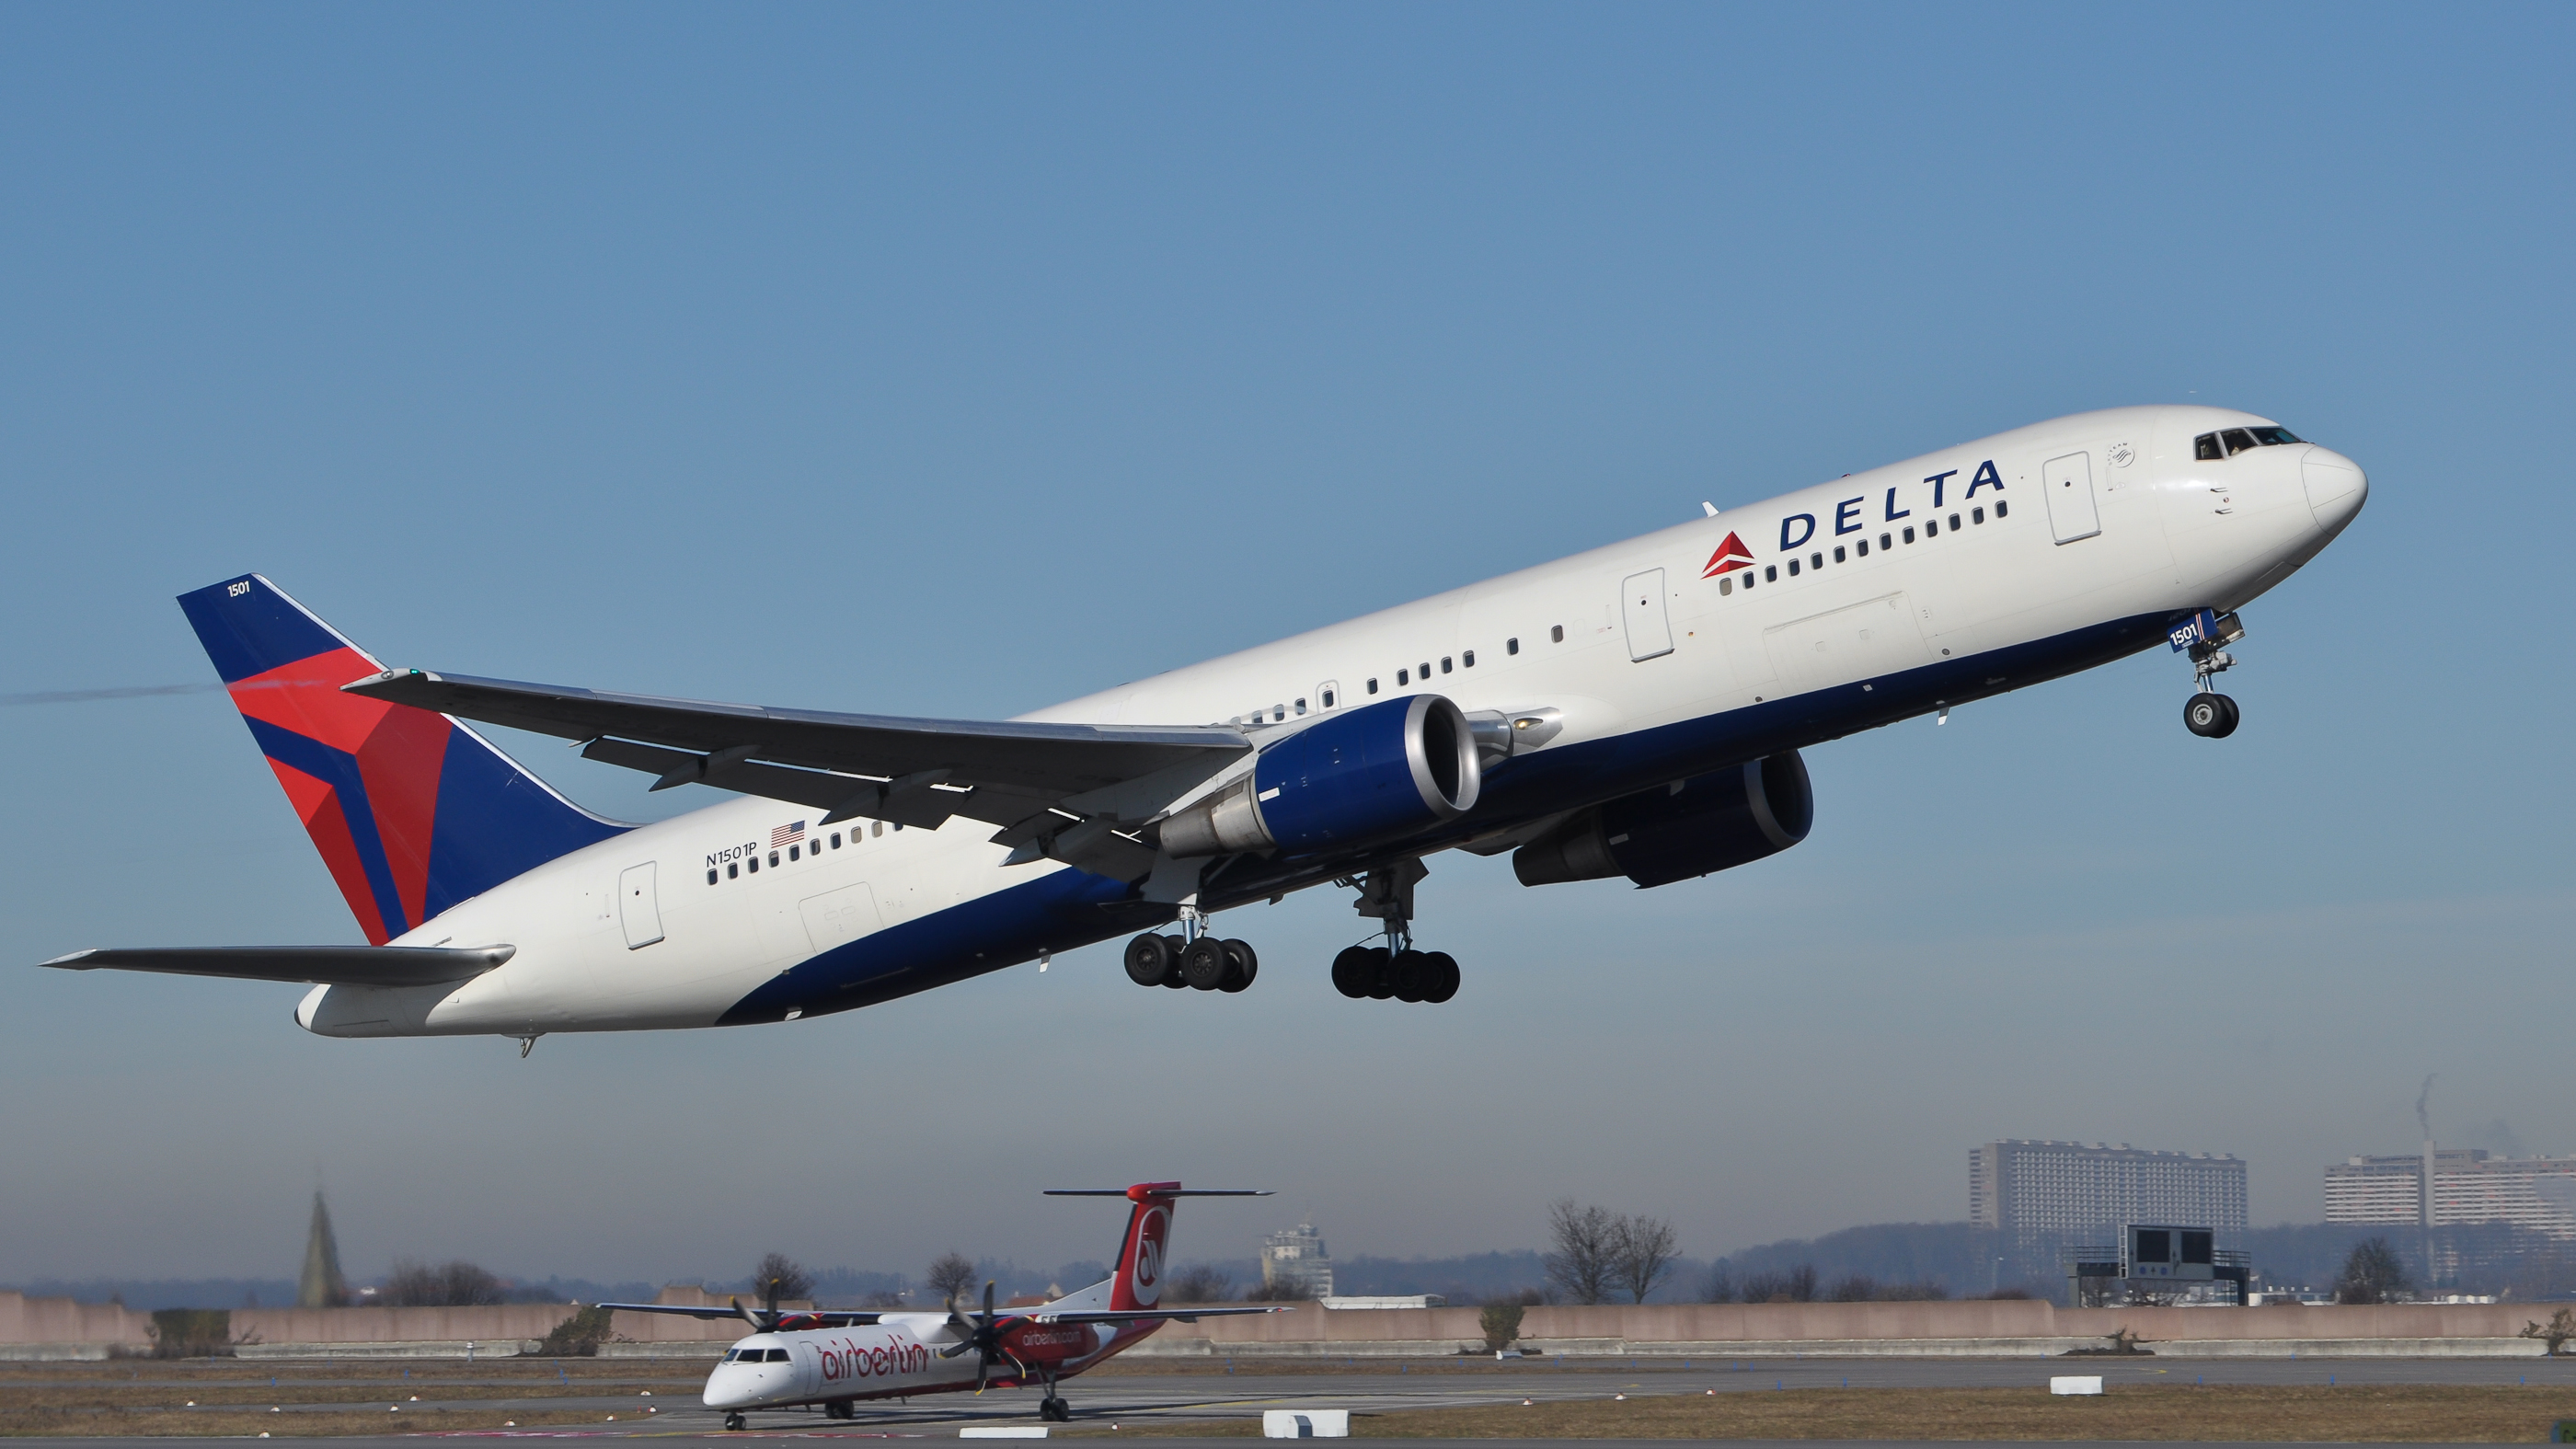 Delta to resume flying several major routes in June